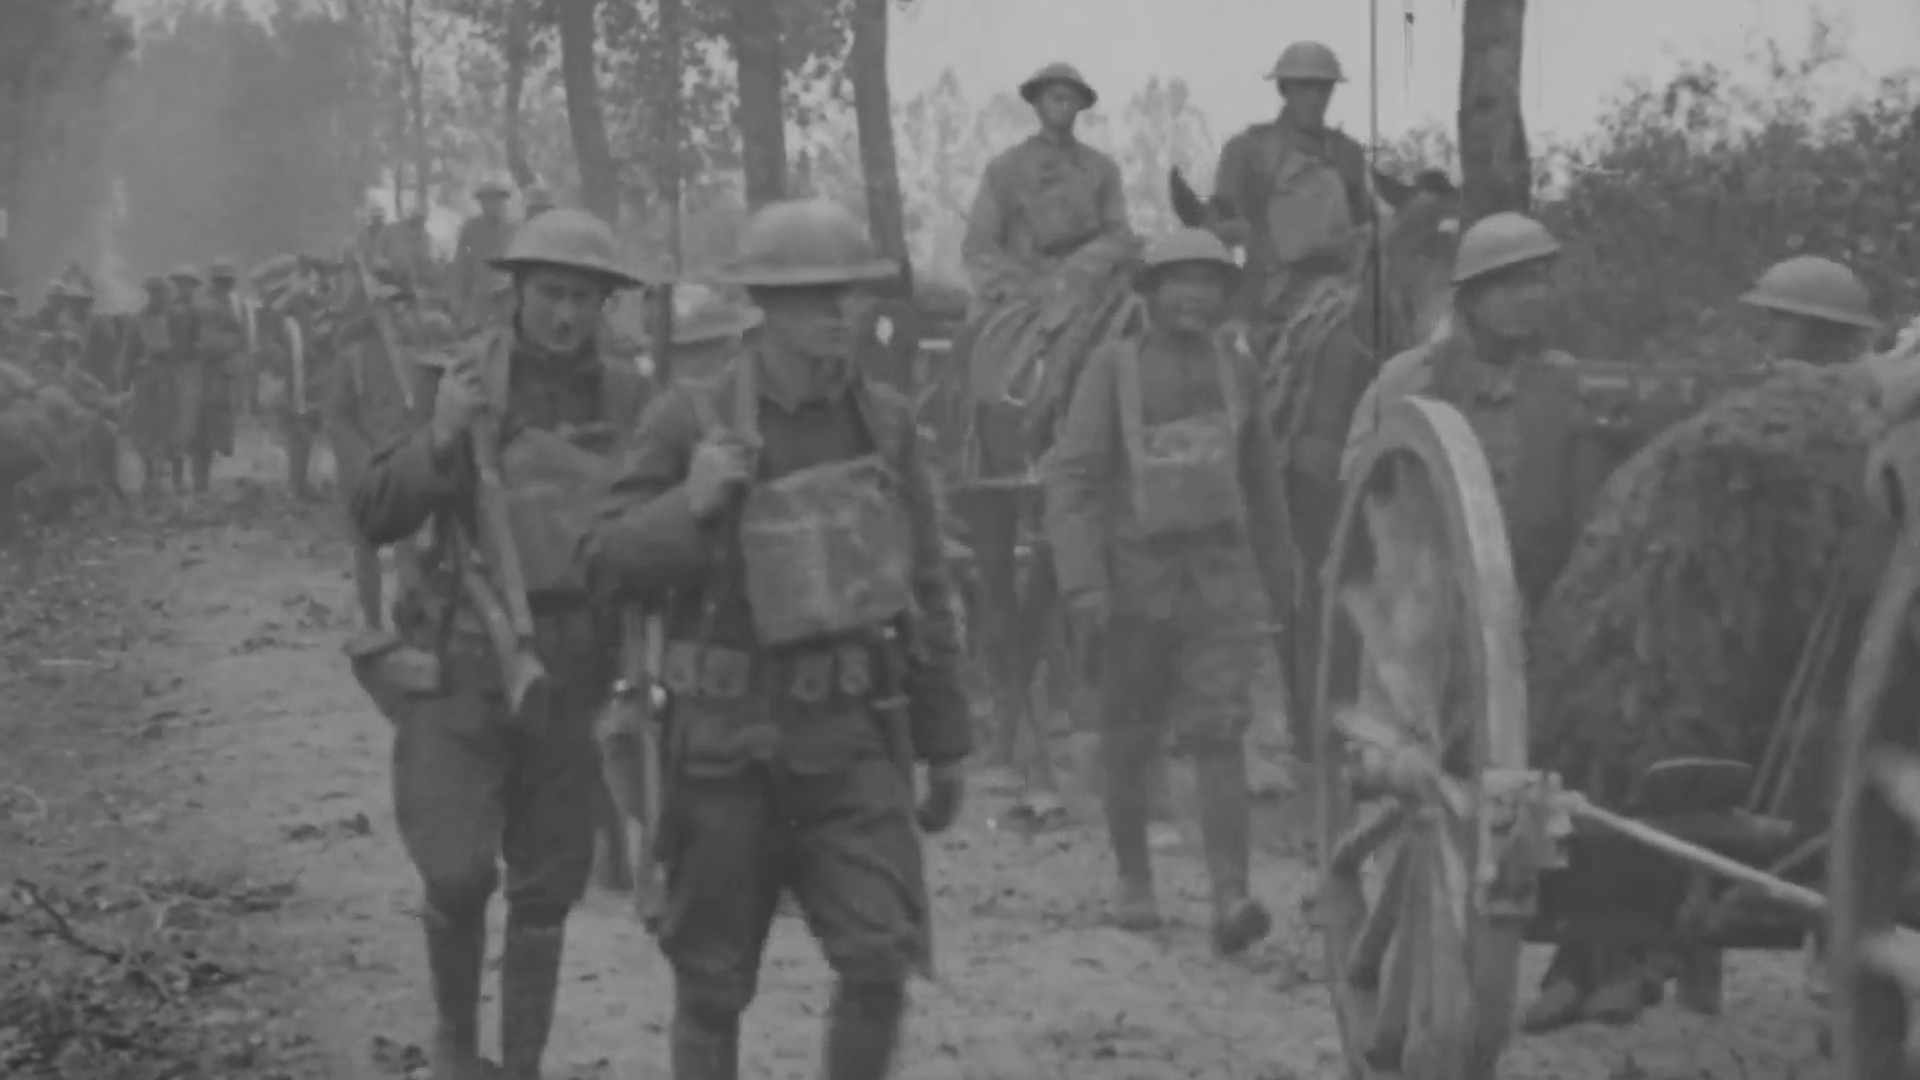 'Attacked and starved': A century-old diary recounts U.S. soldiers trapped behind enemy lines